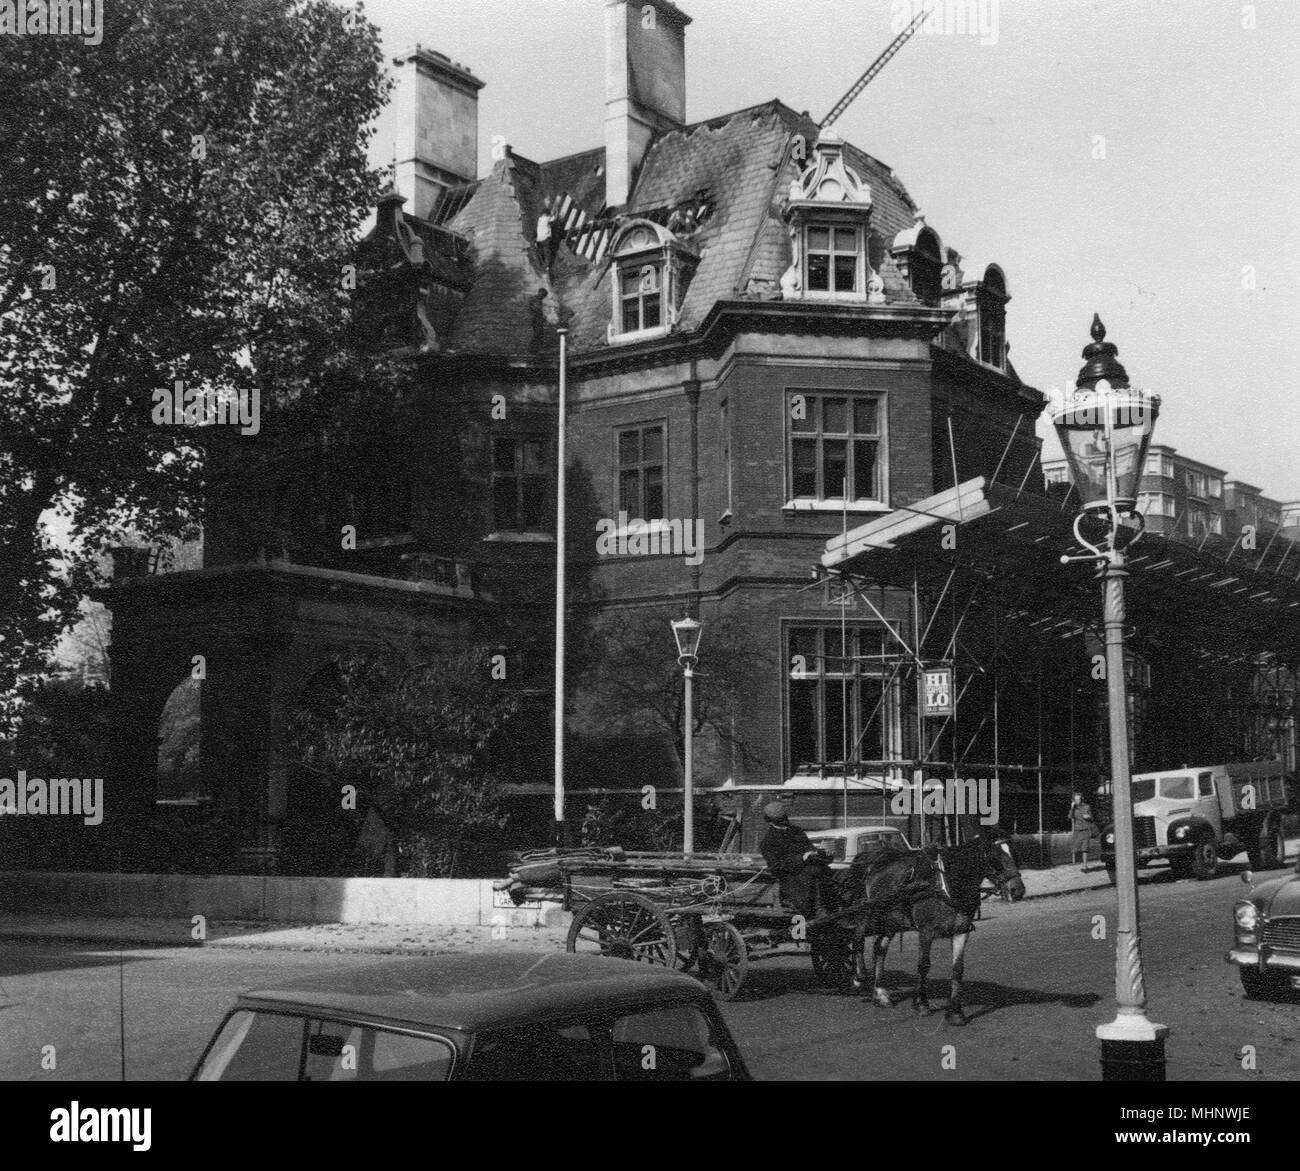 Moncorvo House, A large Victorian building at 67 Ennismore Gardens, Knightsbridge, London SW7 being demolished in September 1963. The building was designed by renowned Scottish Architect John Macvicar Anderson (1835-1915) and built 187880. Notable past residents of Moncorvo House were Albert George Sandeman, governor of the Bank of England, Henri d'Orleans, duke of Aumale, John Gretton, brewer and father of John Gretton, 1st Baron Gretton and Arthur Graham Glasgow, American engineer and industrialist.     Date: 1963 - Stock Image